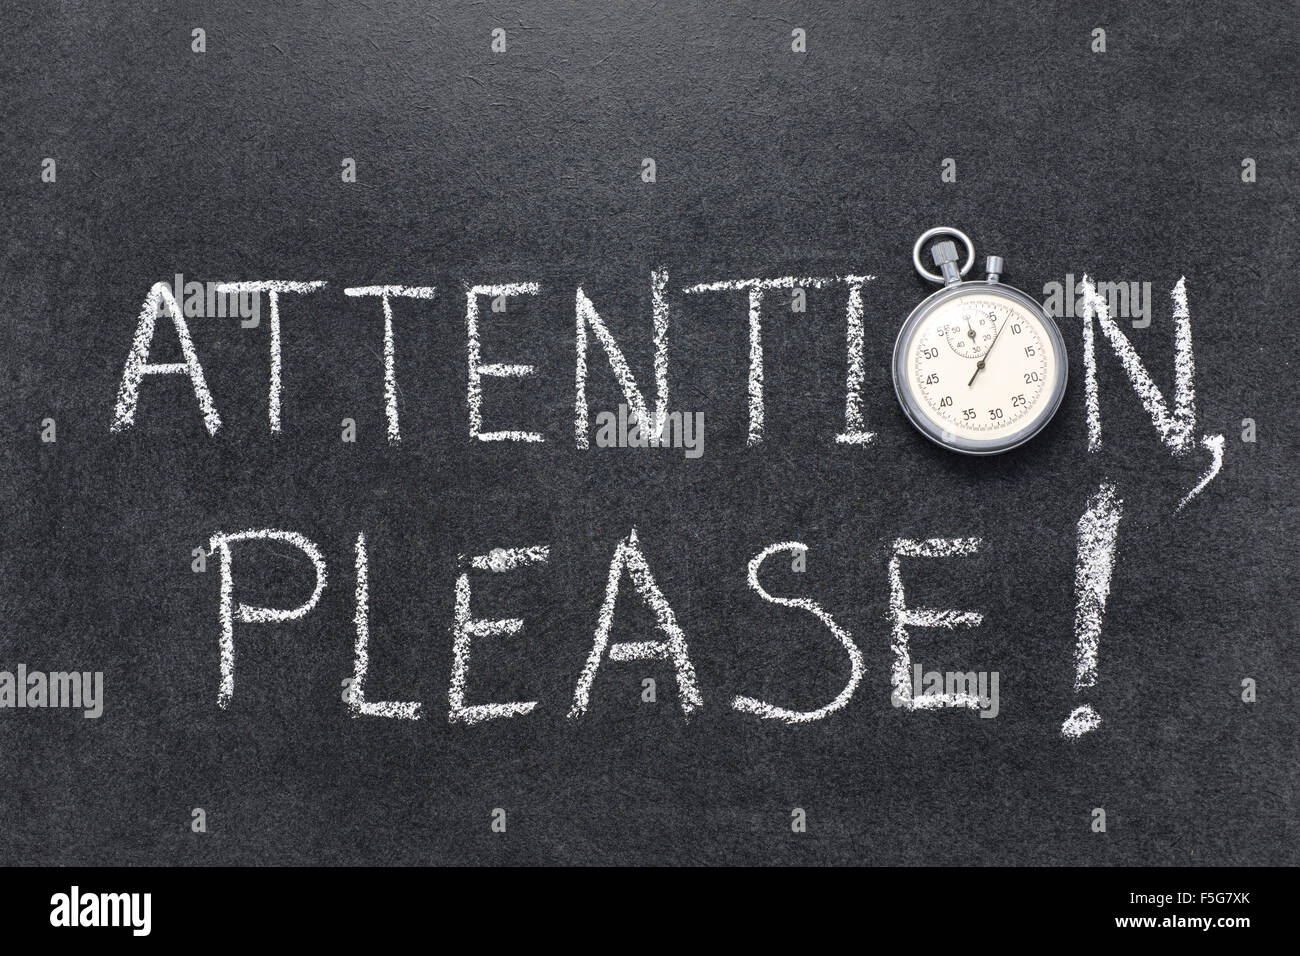 attention, please exclamation handwritten on chalkboard with vintage precise stopwatch used instead of O - Stock Image